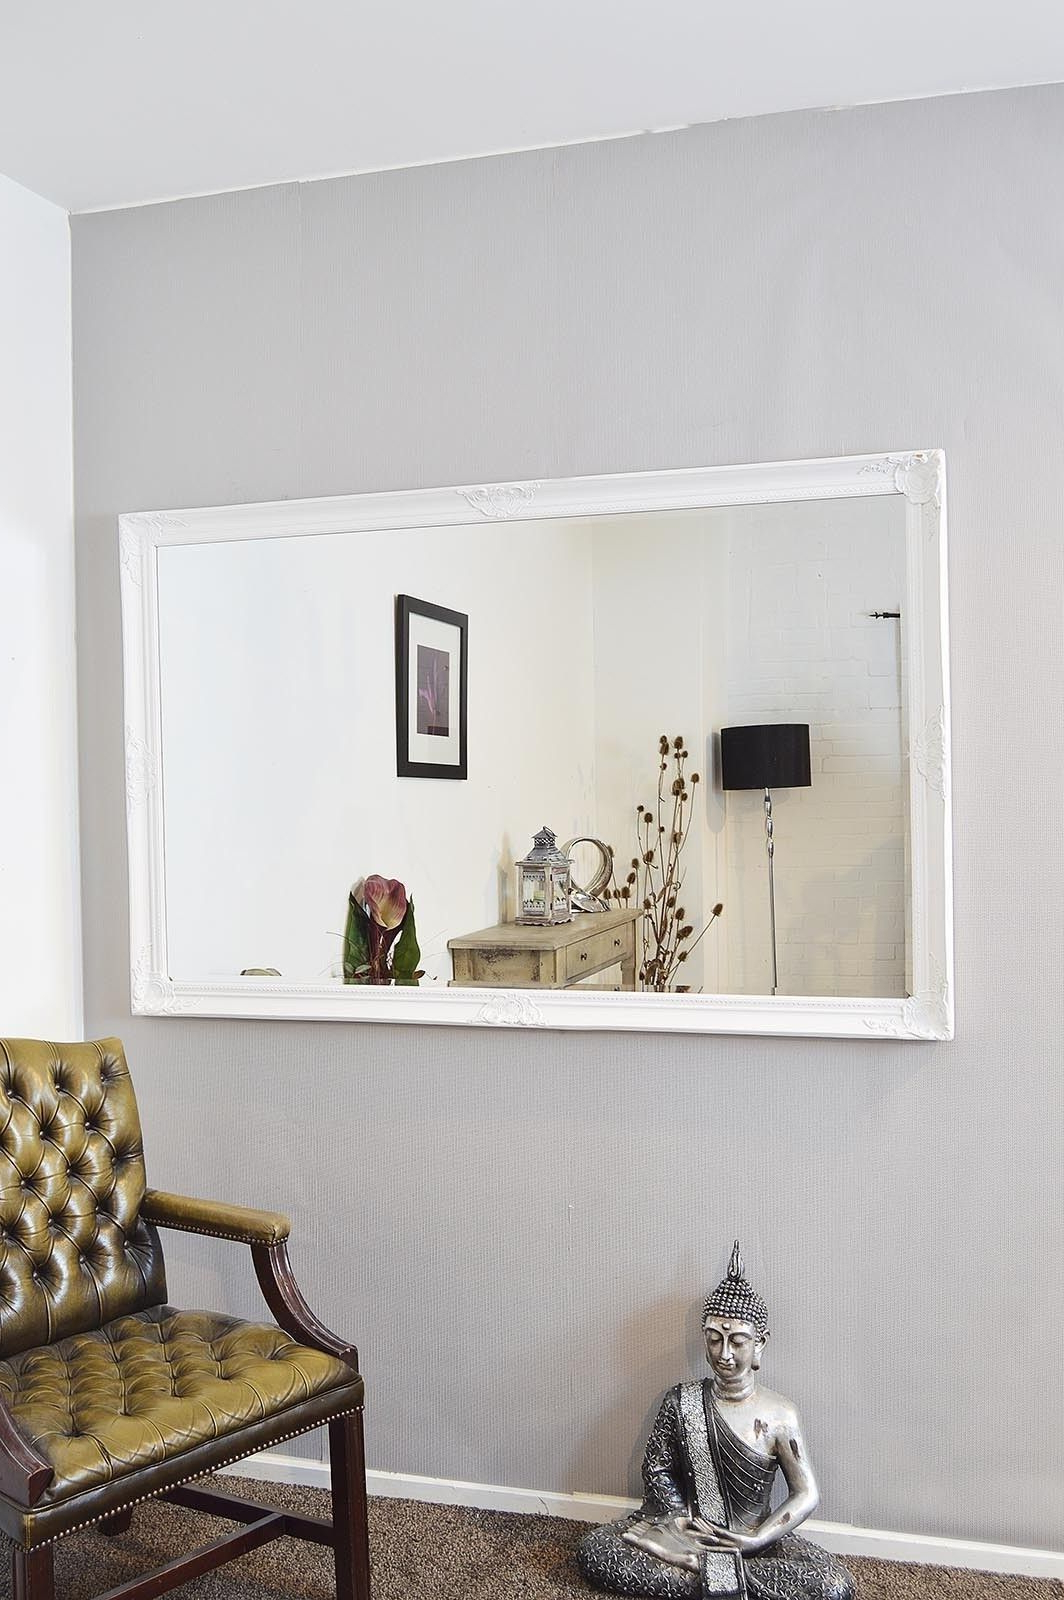 Extra Large White Full Length Antique Bevelled Wall Mirror 5ft6x3ft6 Regarding Recent White Framed Wall Mirrors (View 16 of 20)